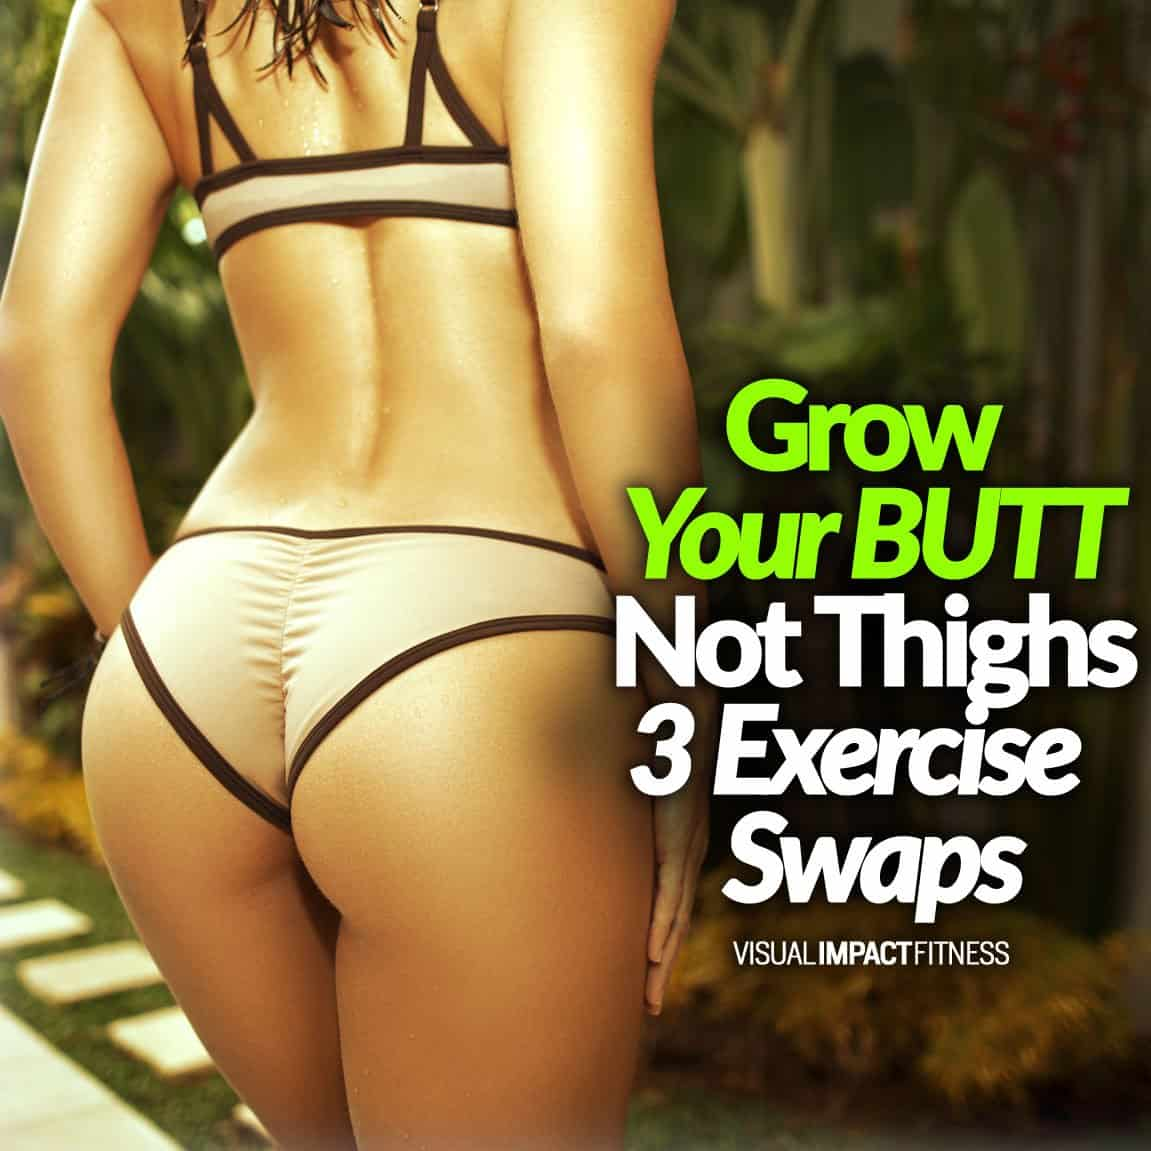 Grow Your BUTT Not Thighs - 3 Exercise Swaps